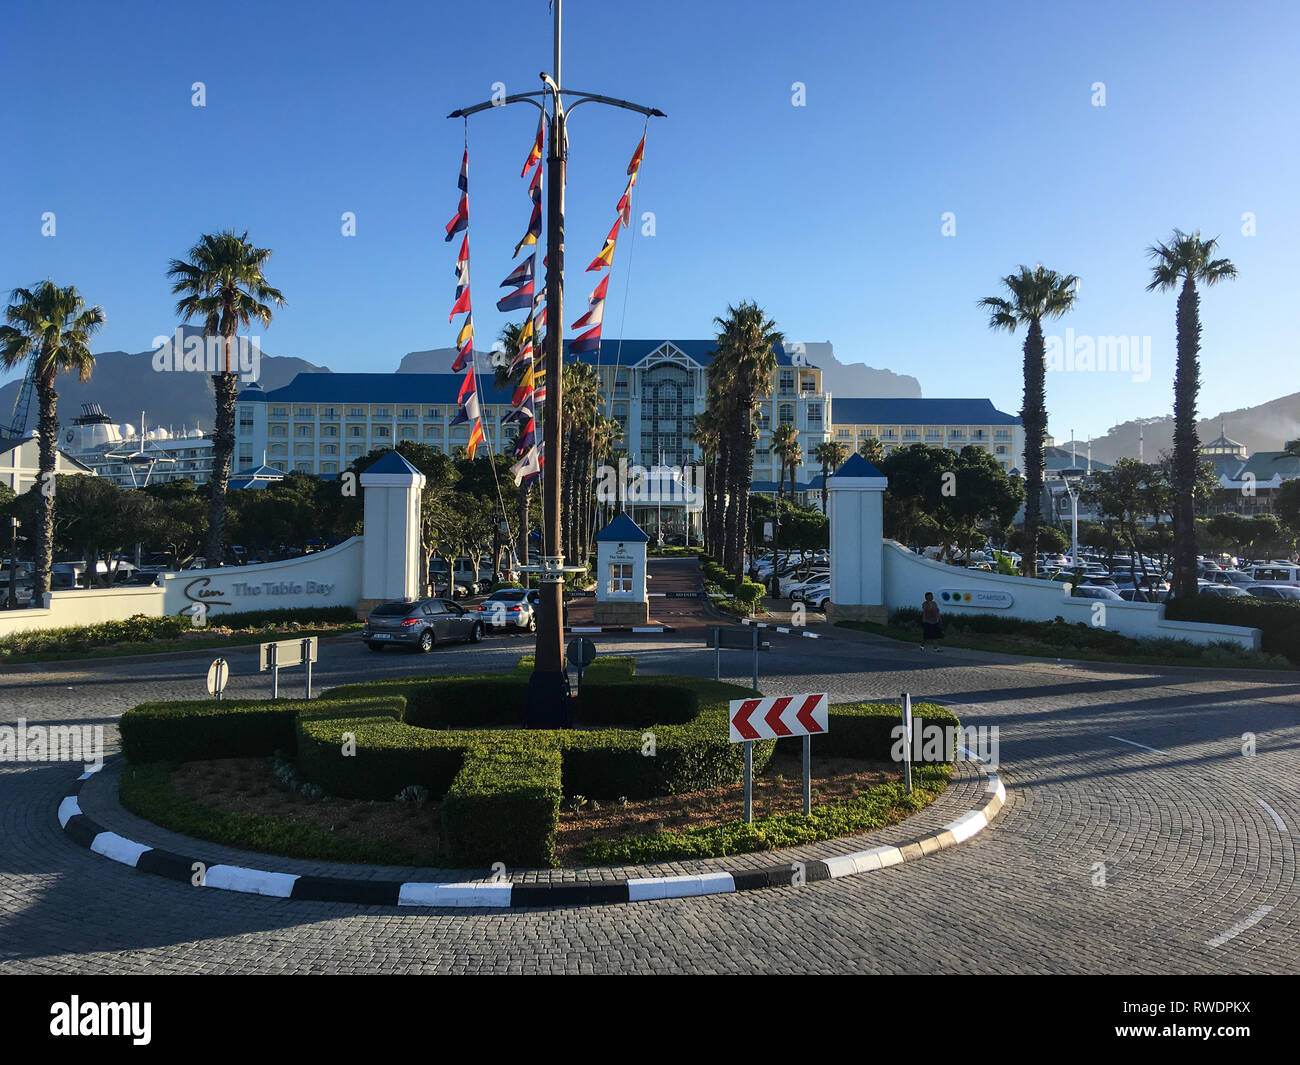 CAPE TOWN, SOUTH AFRICA - DECEMBER 31, 2018: View of Table Bay Hotel at Victoria and Alfred Waterfront in Cape Town. - Stock Image